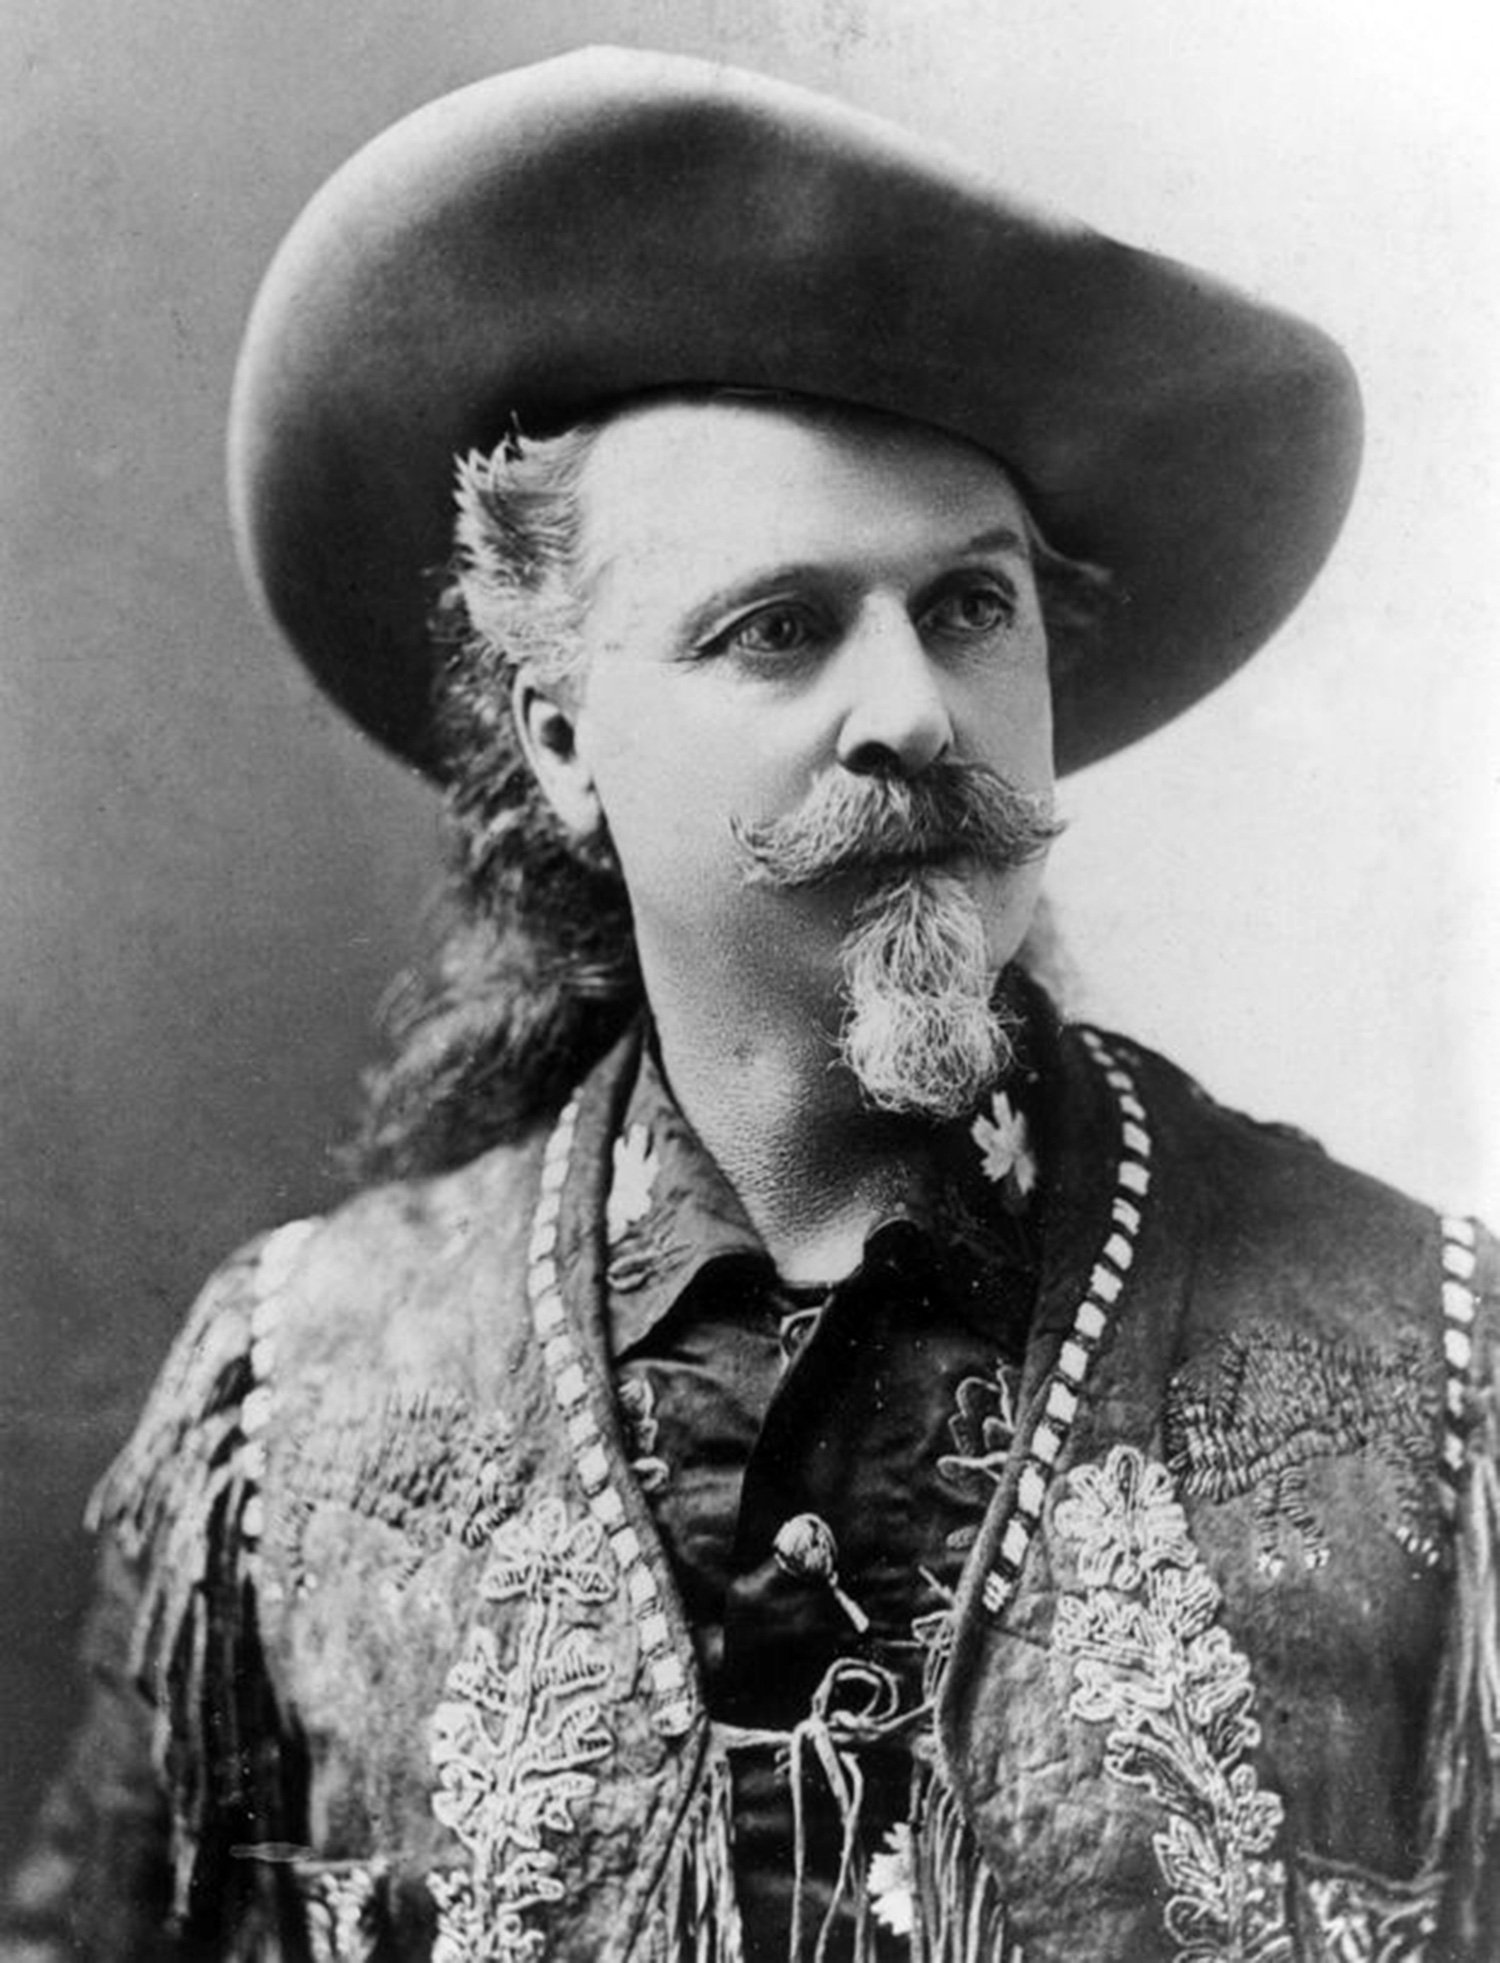 William Cody aka Buffalo Bill. A man who lived the sentiments spoken by President Abraham Lincoln in his Gettysburg Address.